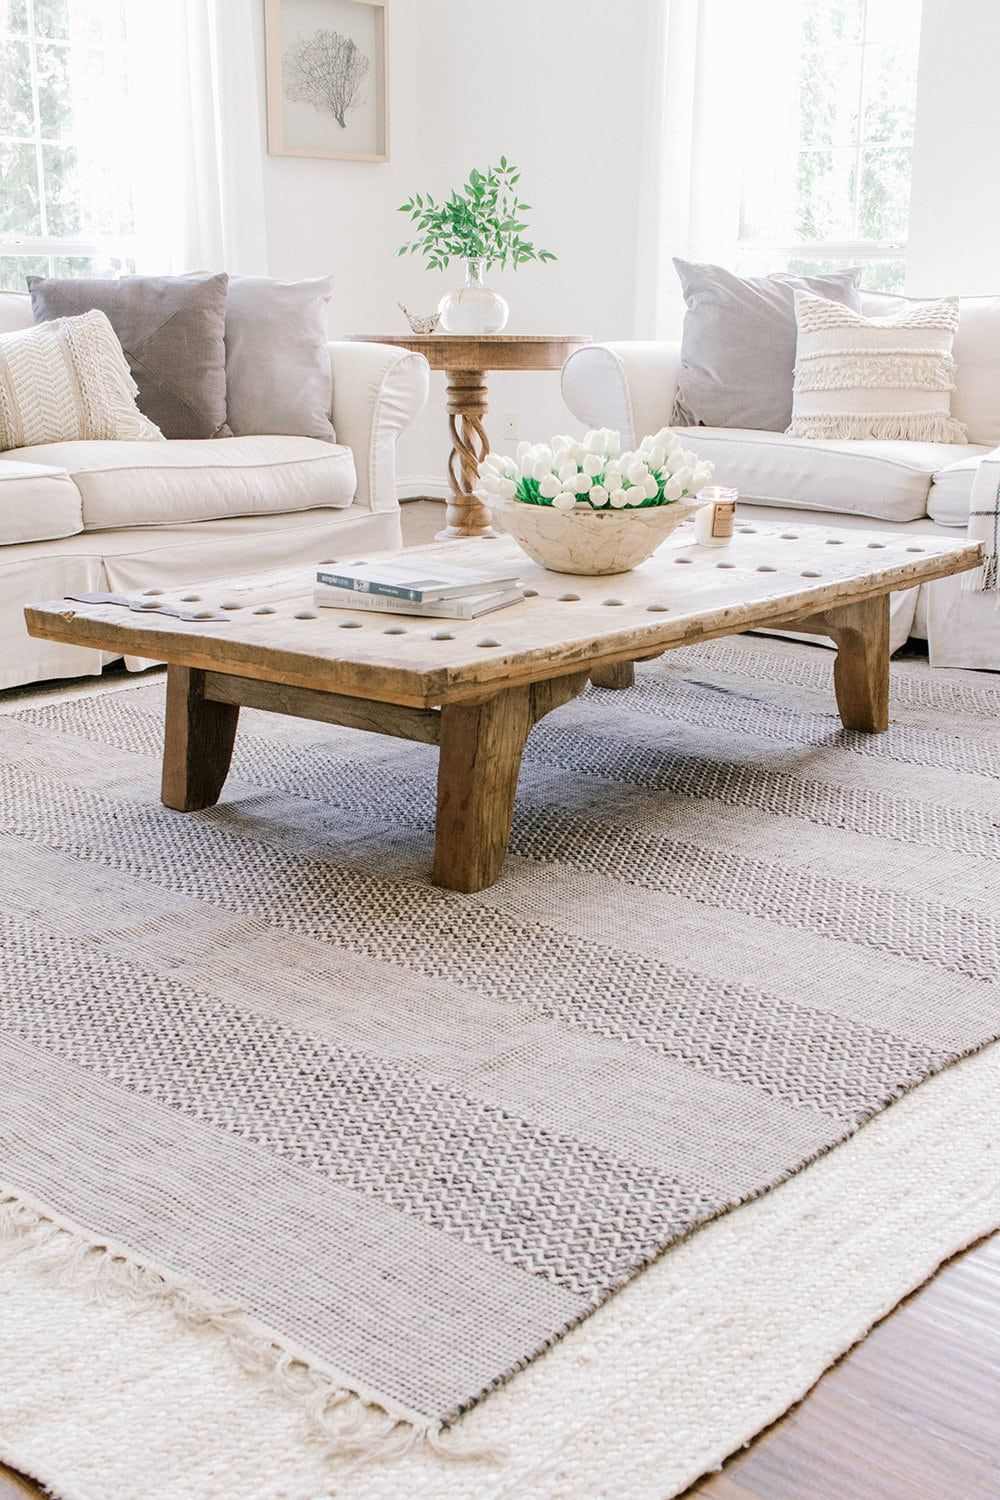 Home Decorating Trends 2021 24 Popular Interior Decor Ideas Farmhouse Rugs Living Room Rugs In Living Room Trending Decor Living room ideas rugs